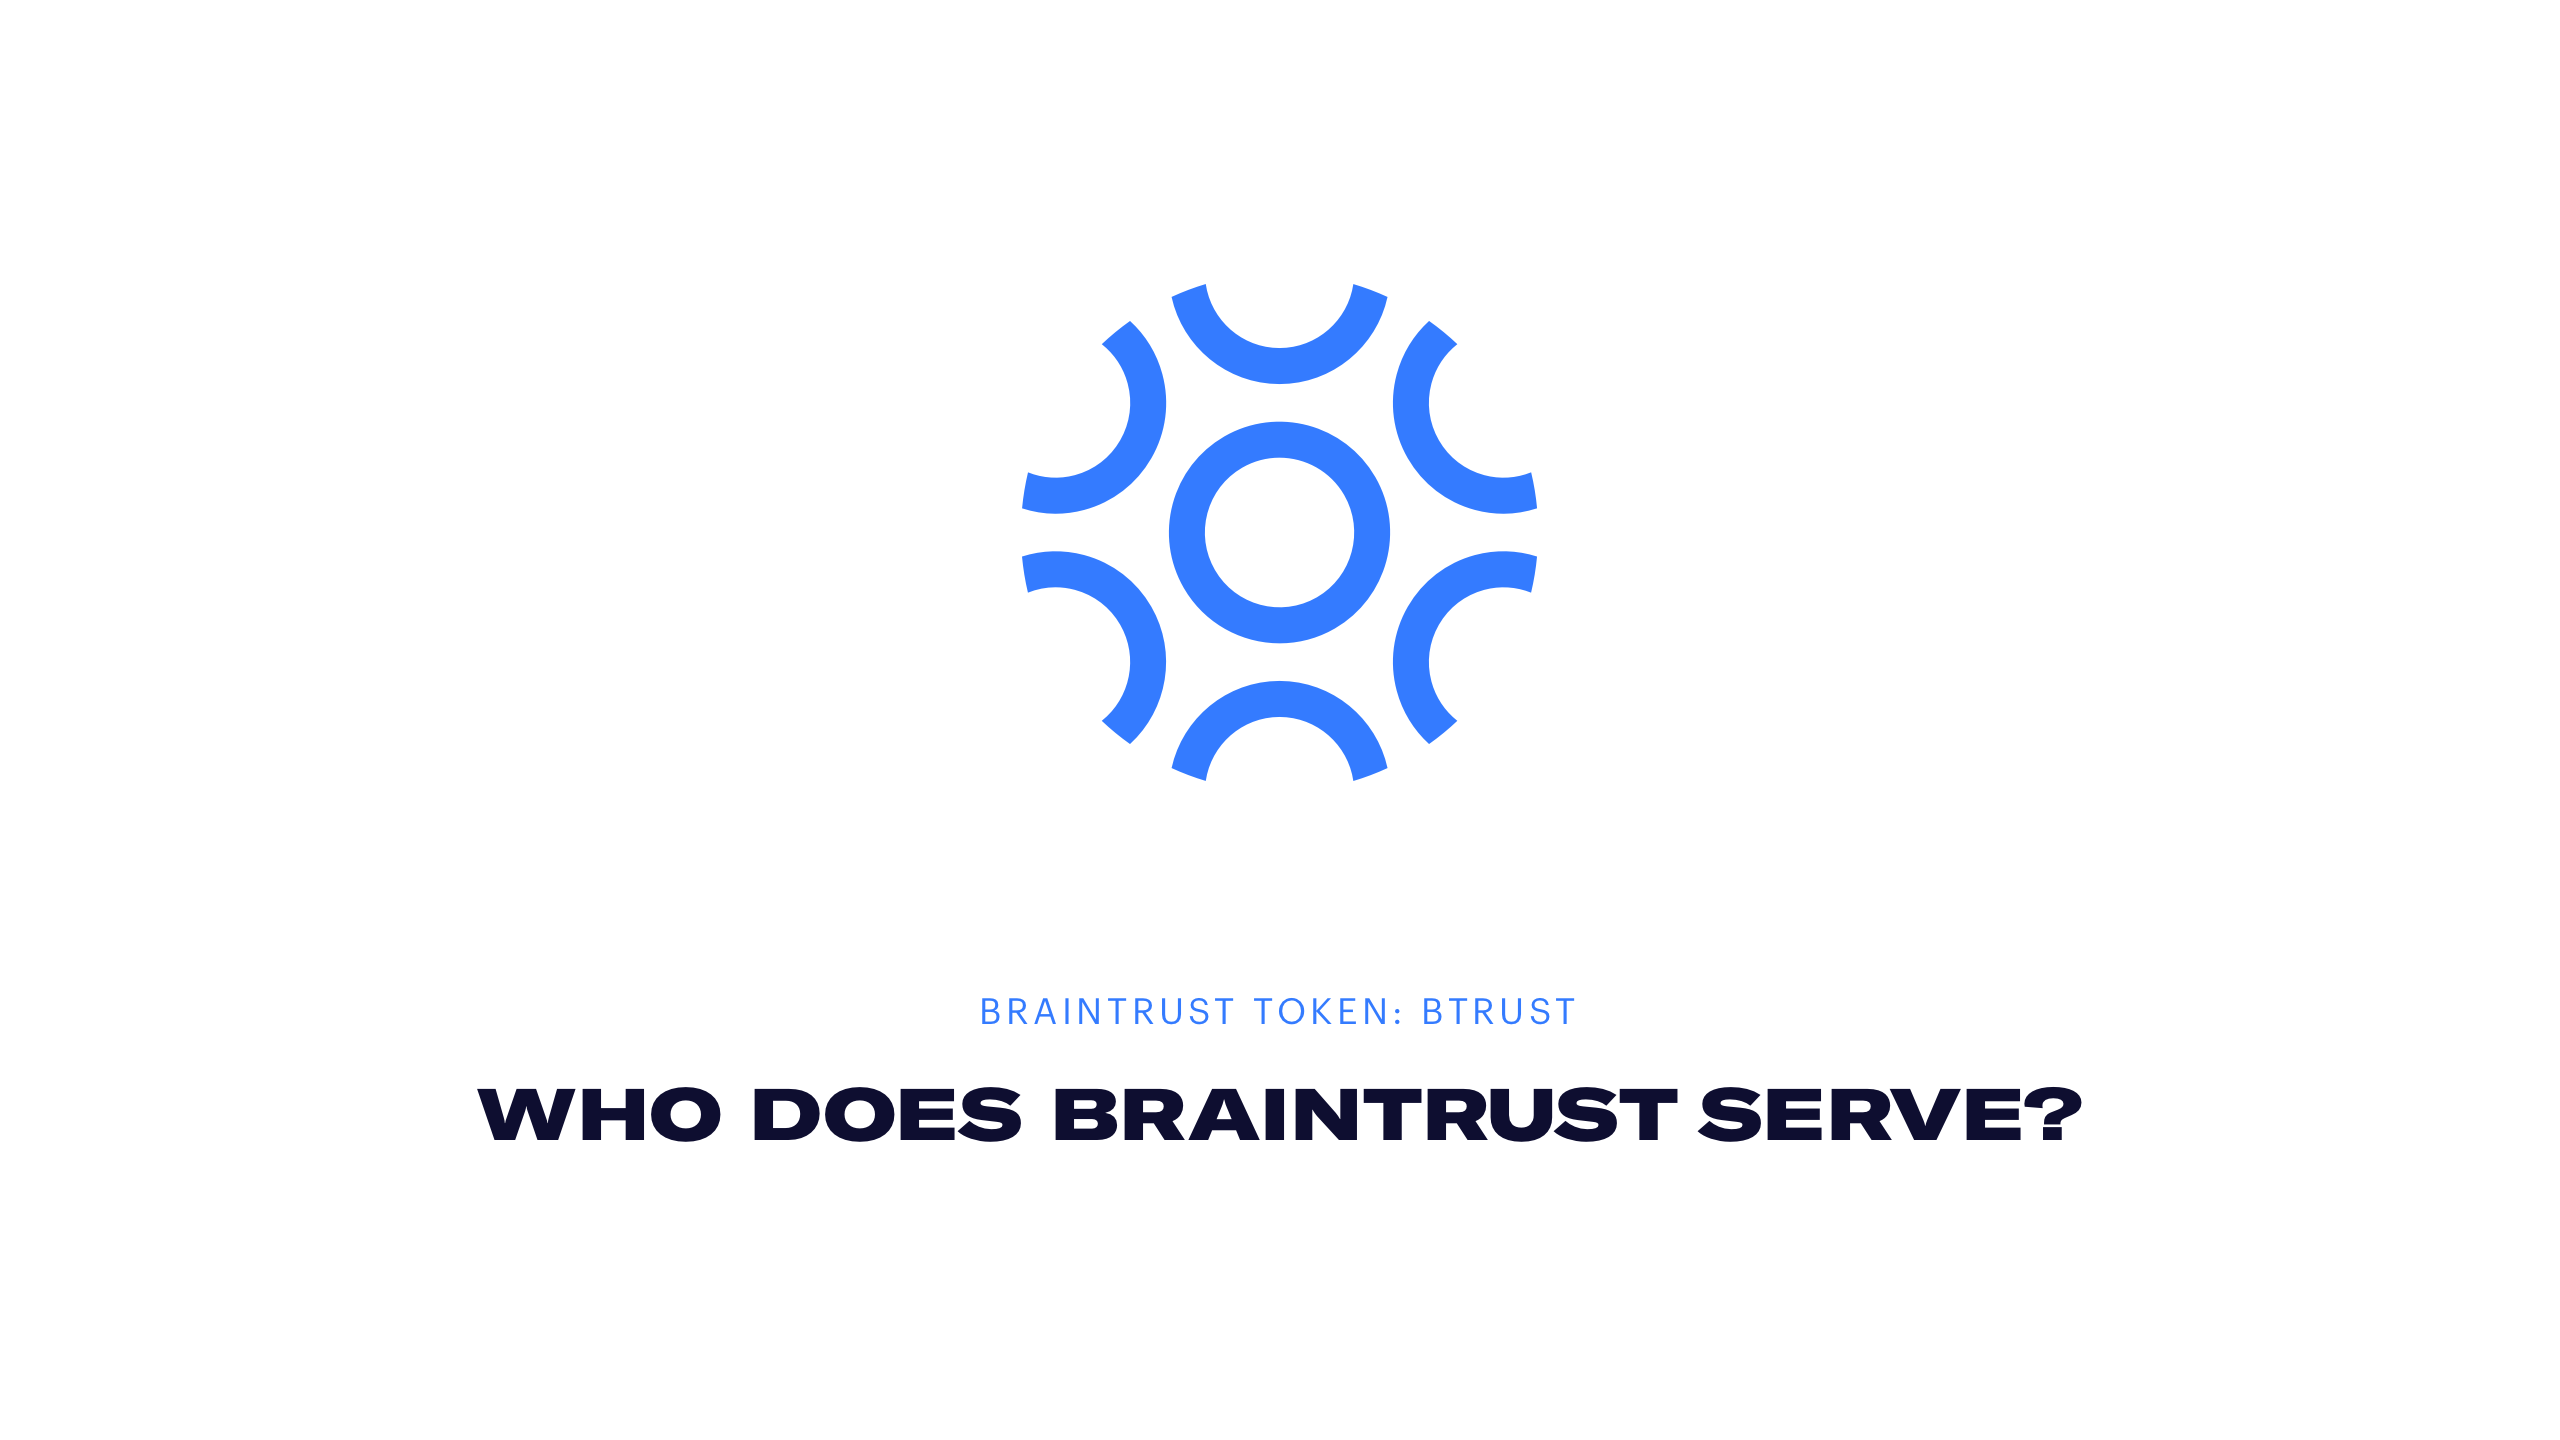 BTRUST - Who does Braintrust serve?